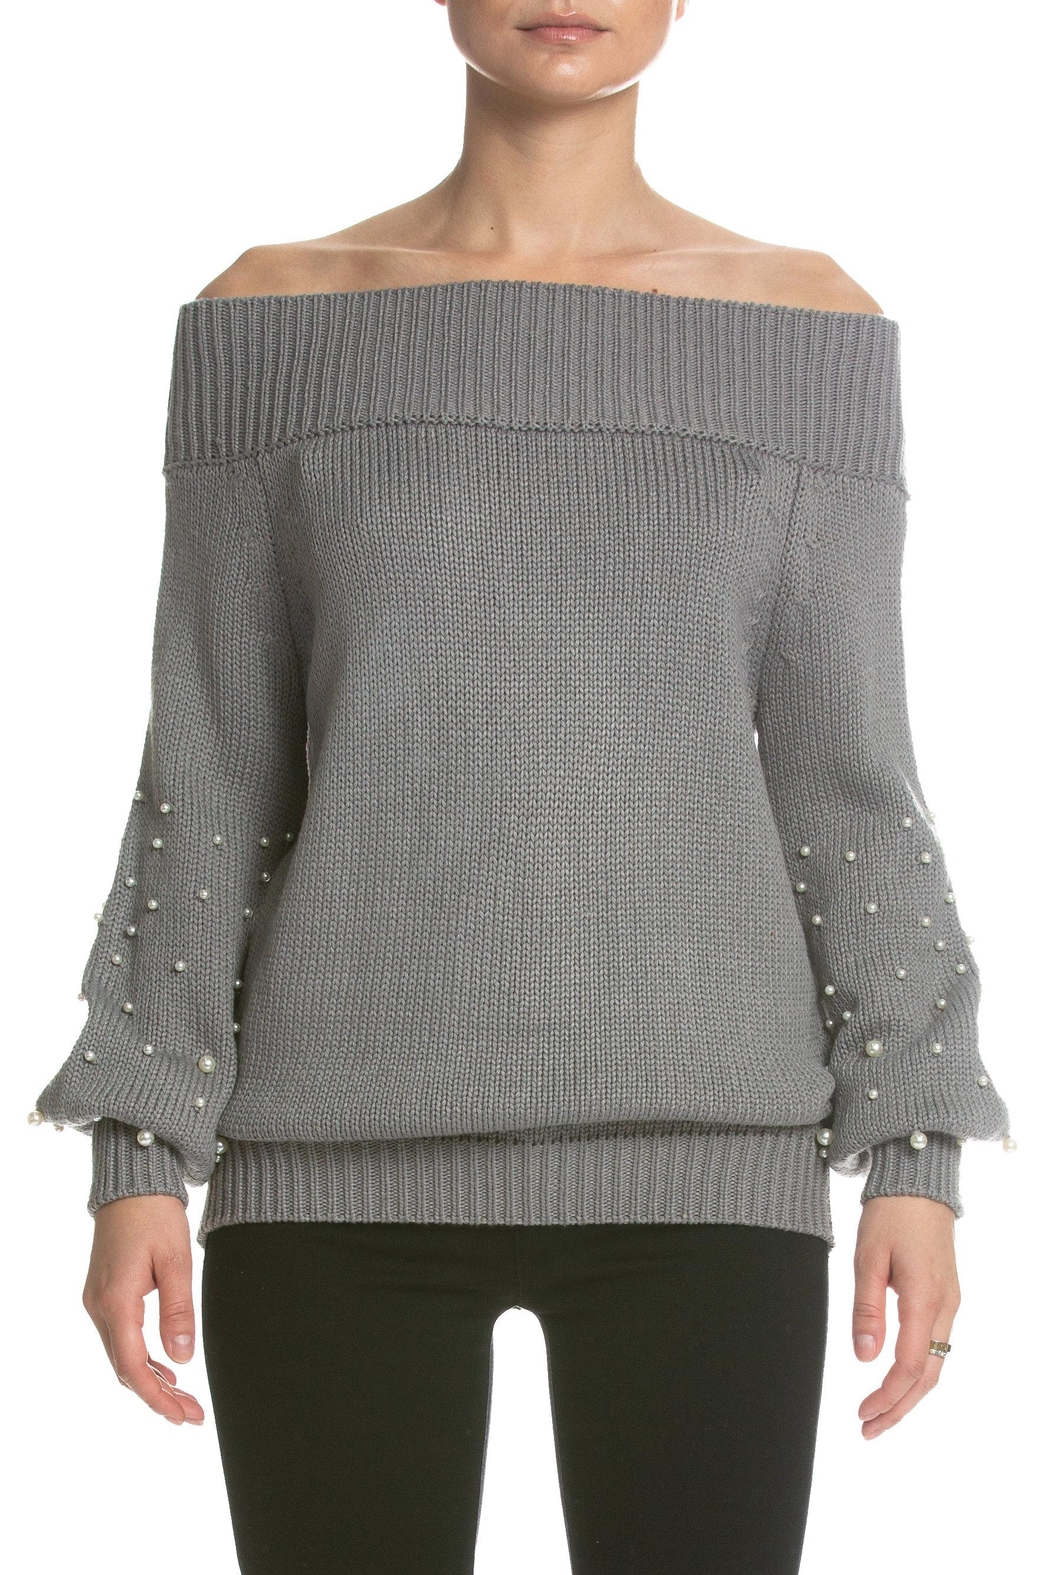 Elan Pearl Studded Sweater - Front Cropped Image